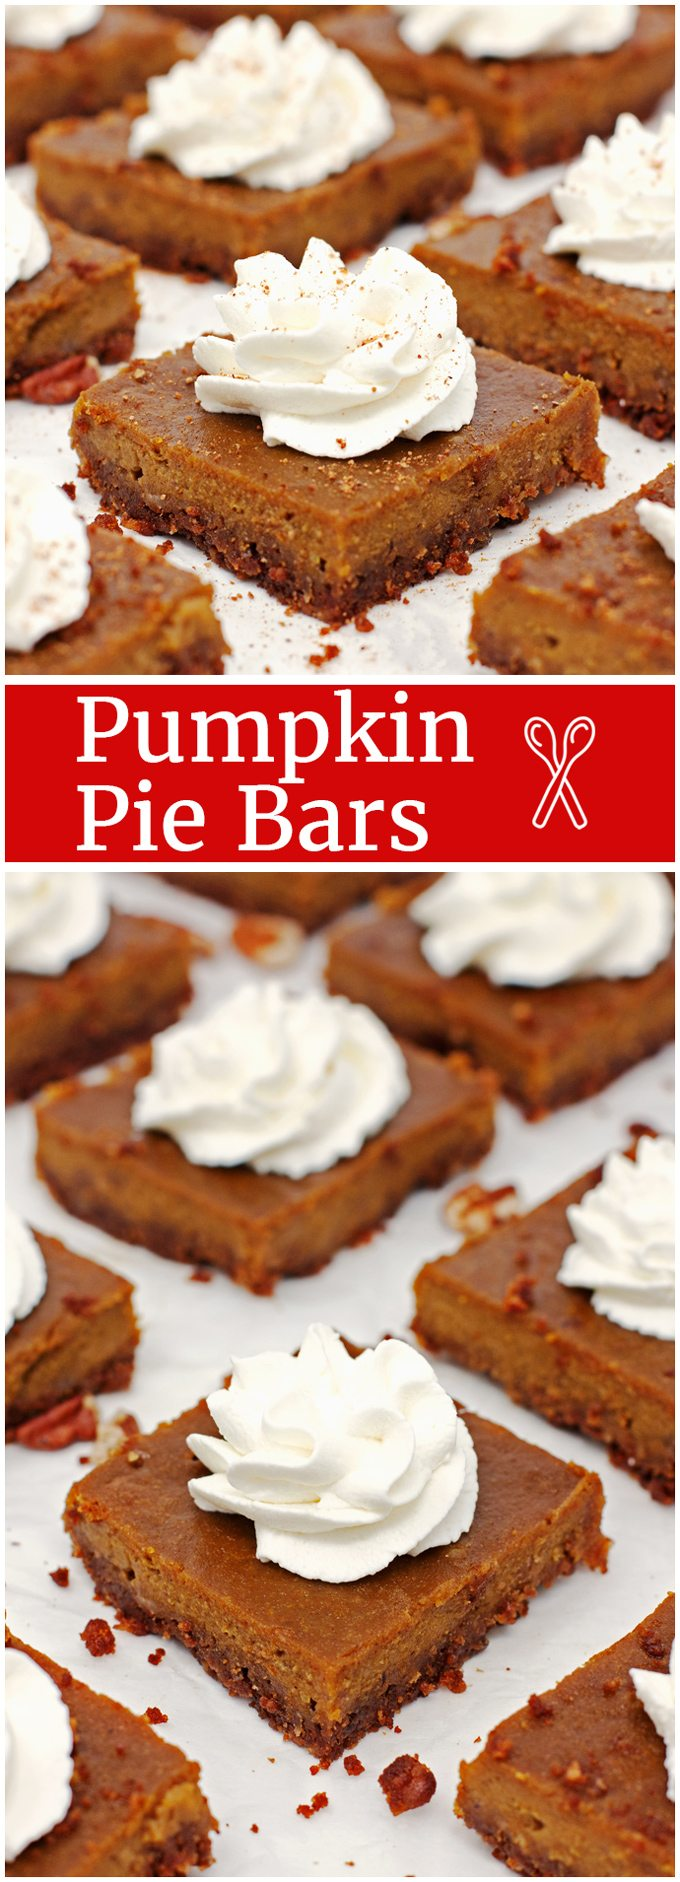 Pumpkin Pie Bars: Pumpkin pie recipe without the hassle of pie crust! - 2teaspoons.com